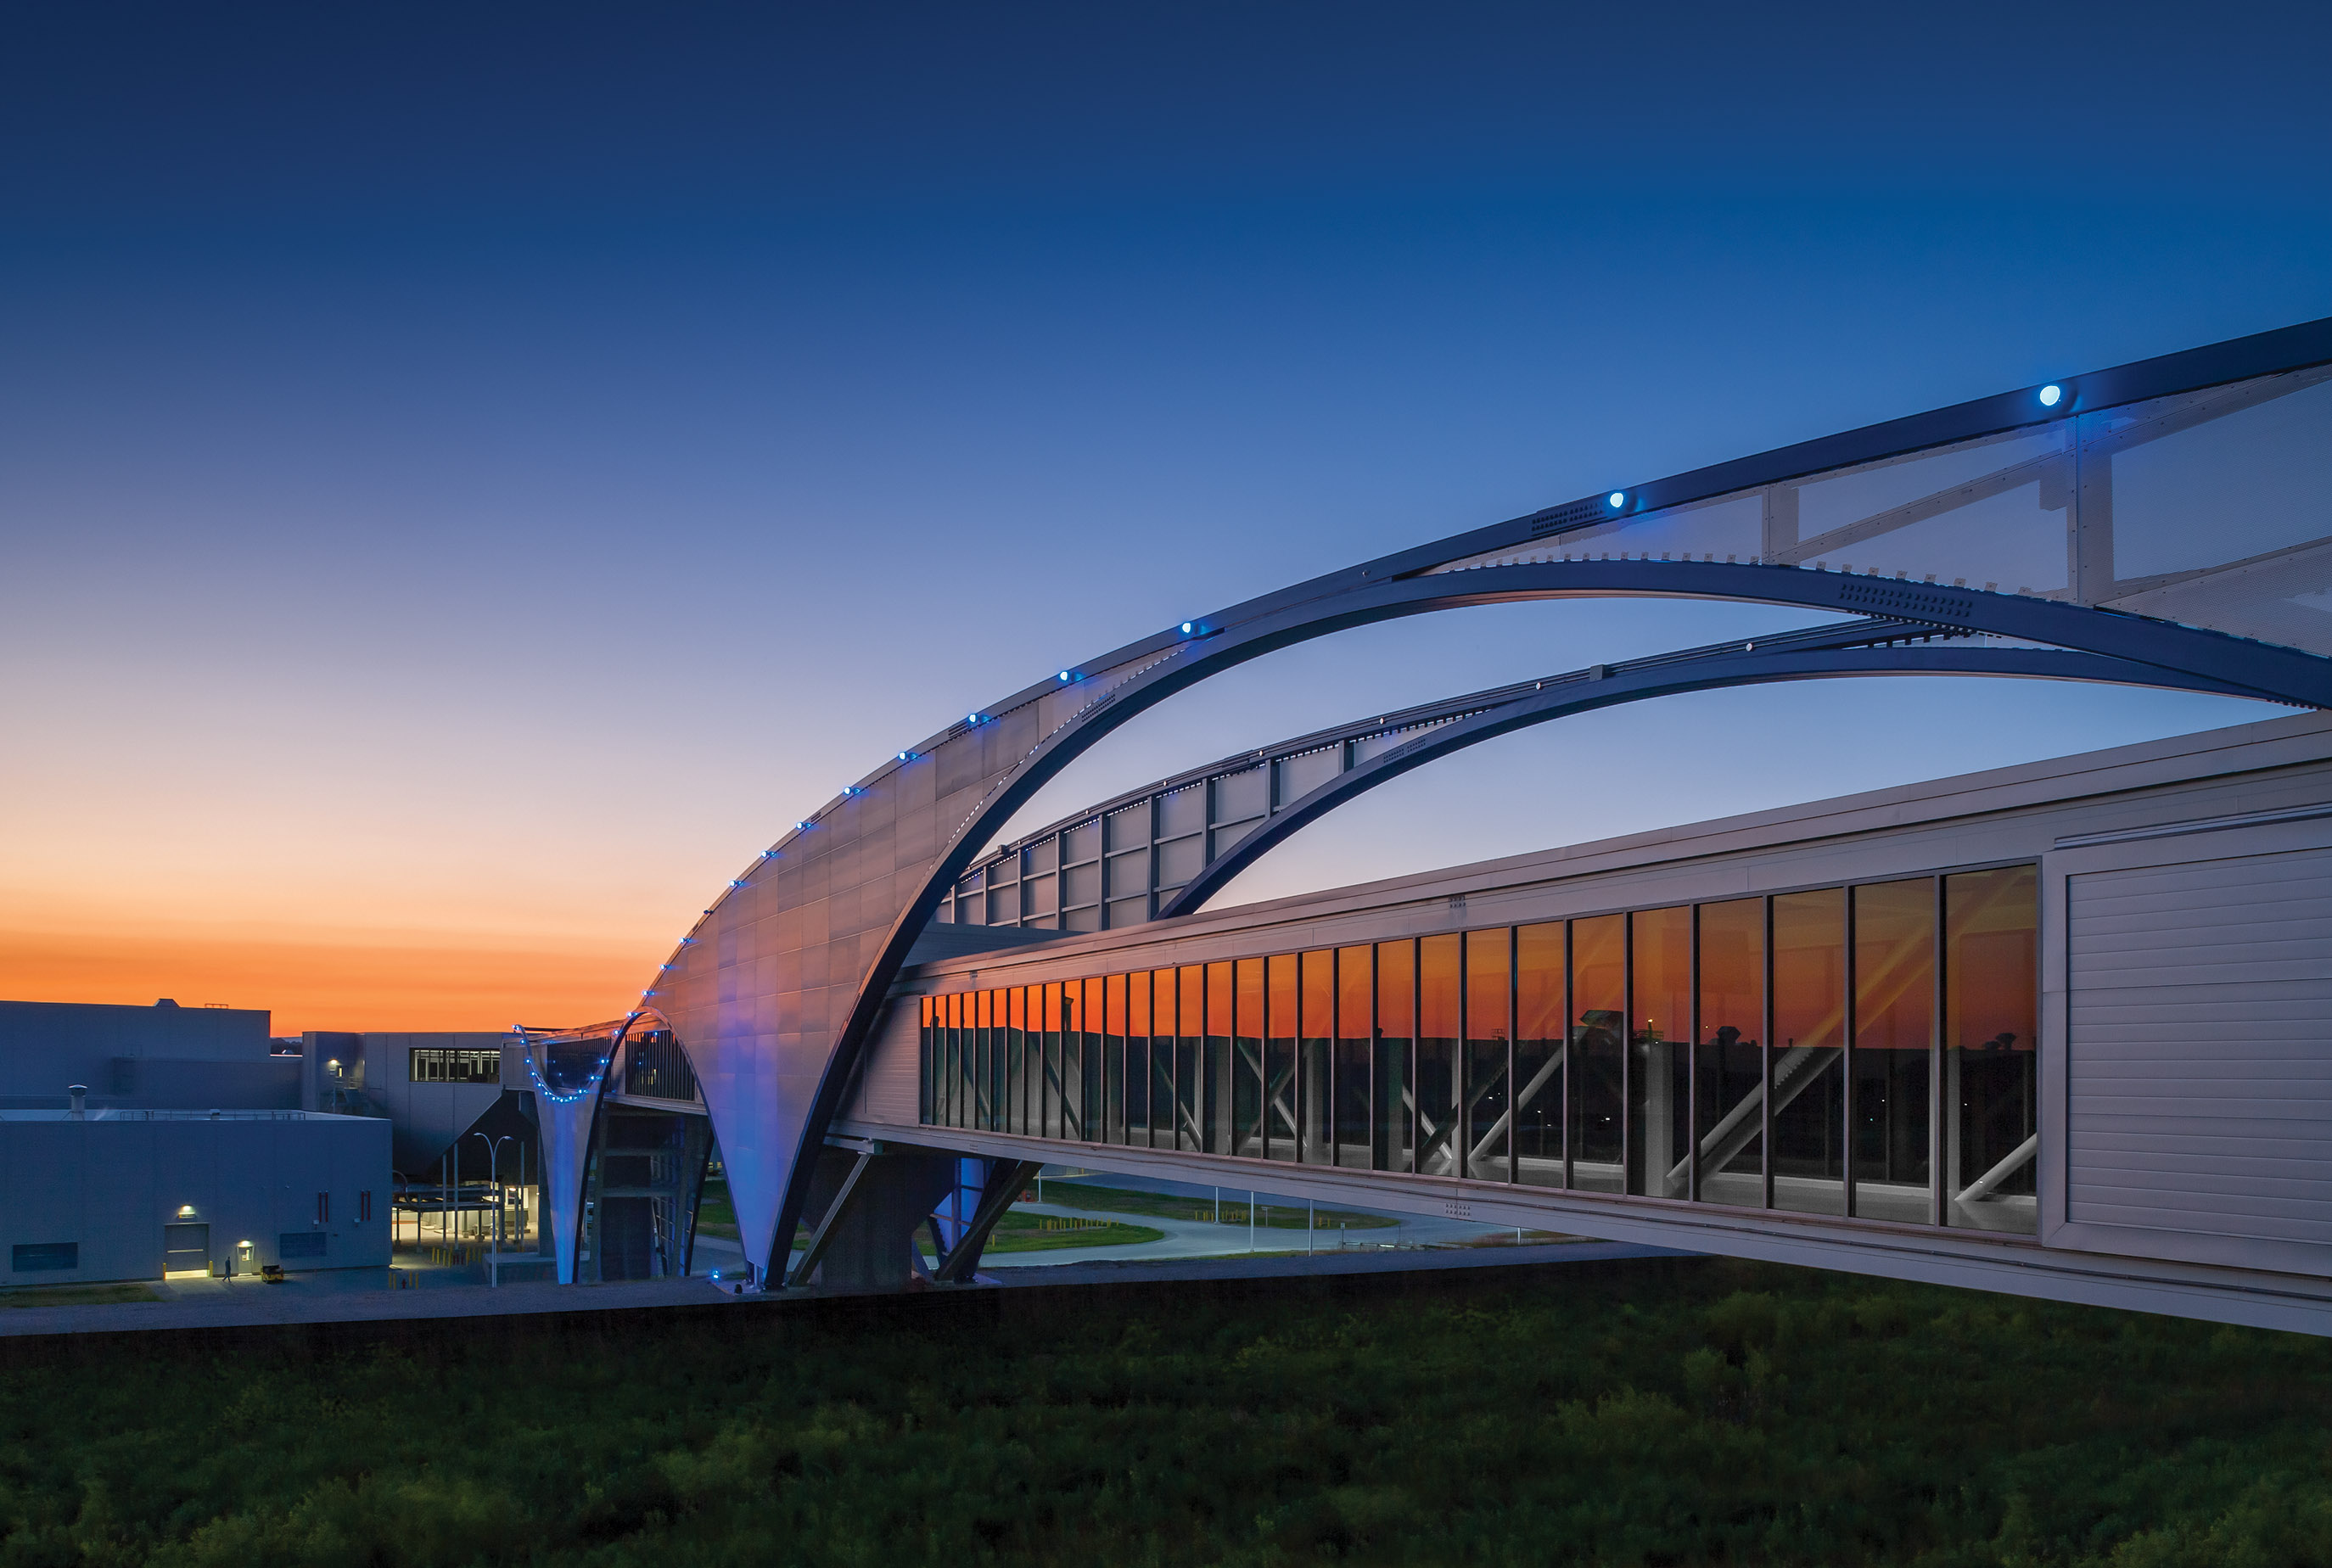 Twilight at Volkswagen pedestrian bridge in Chattanooga